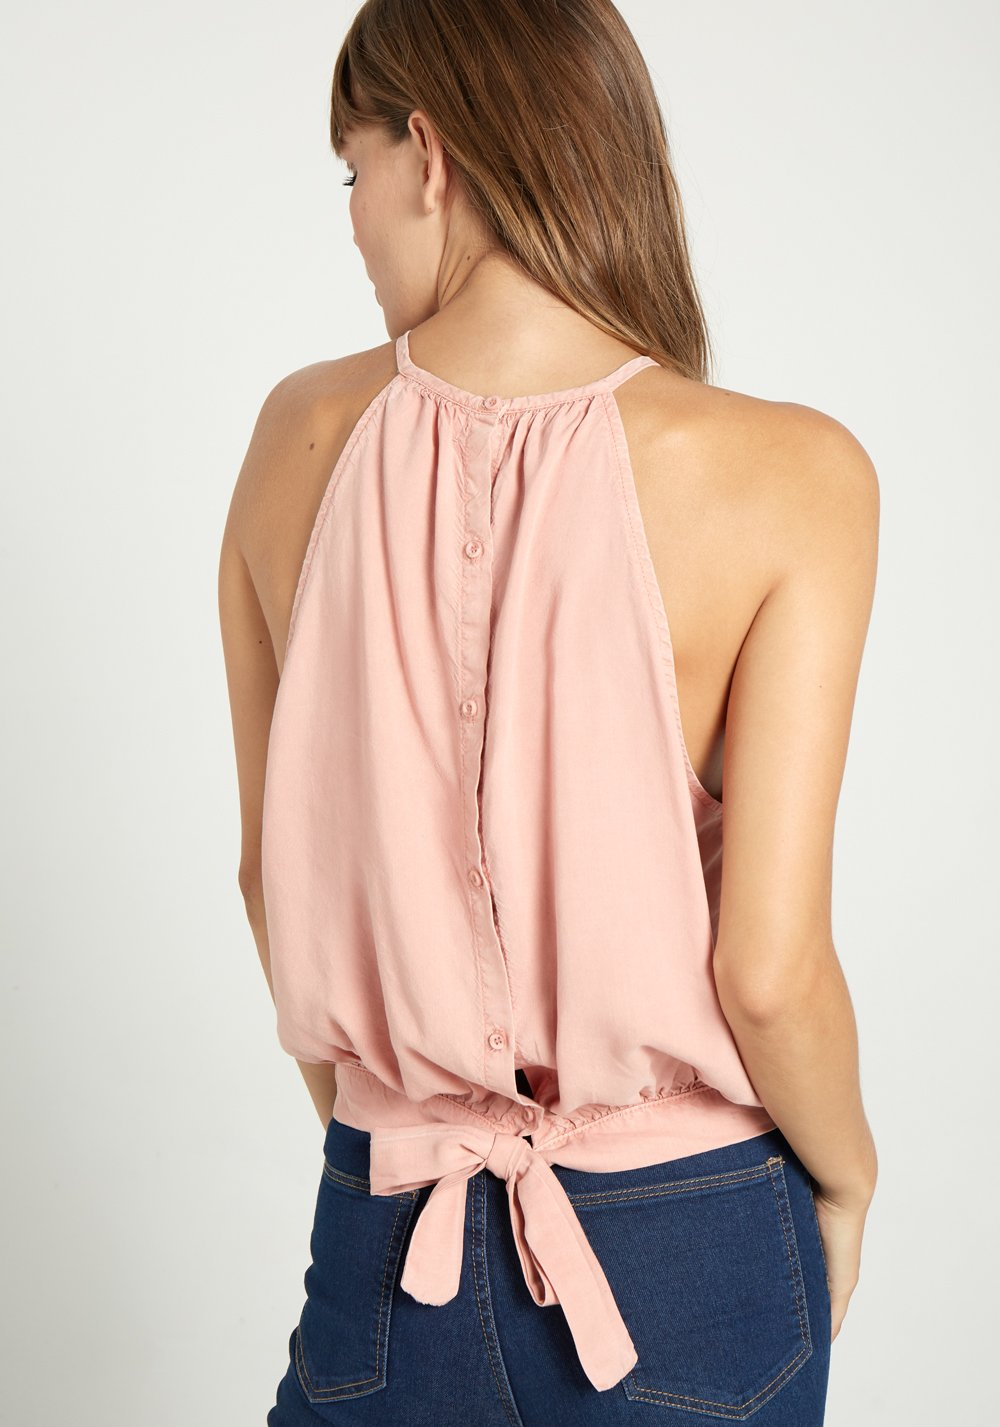 BELLA DAHL - Button Back Halter Blouse online at PAYA boutique